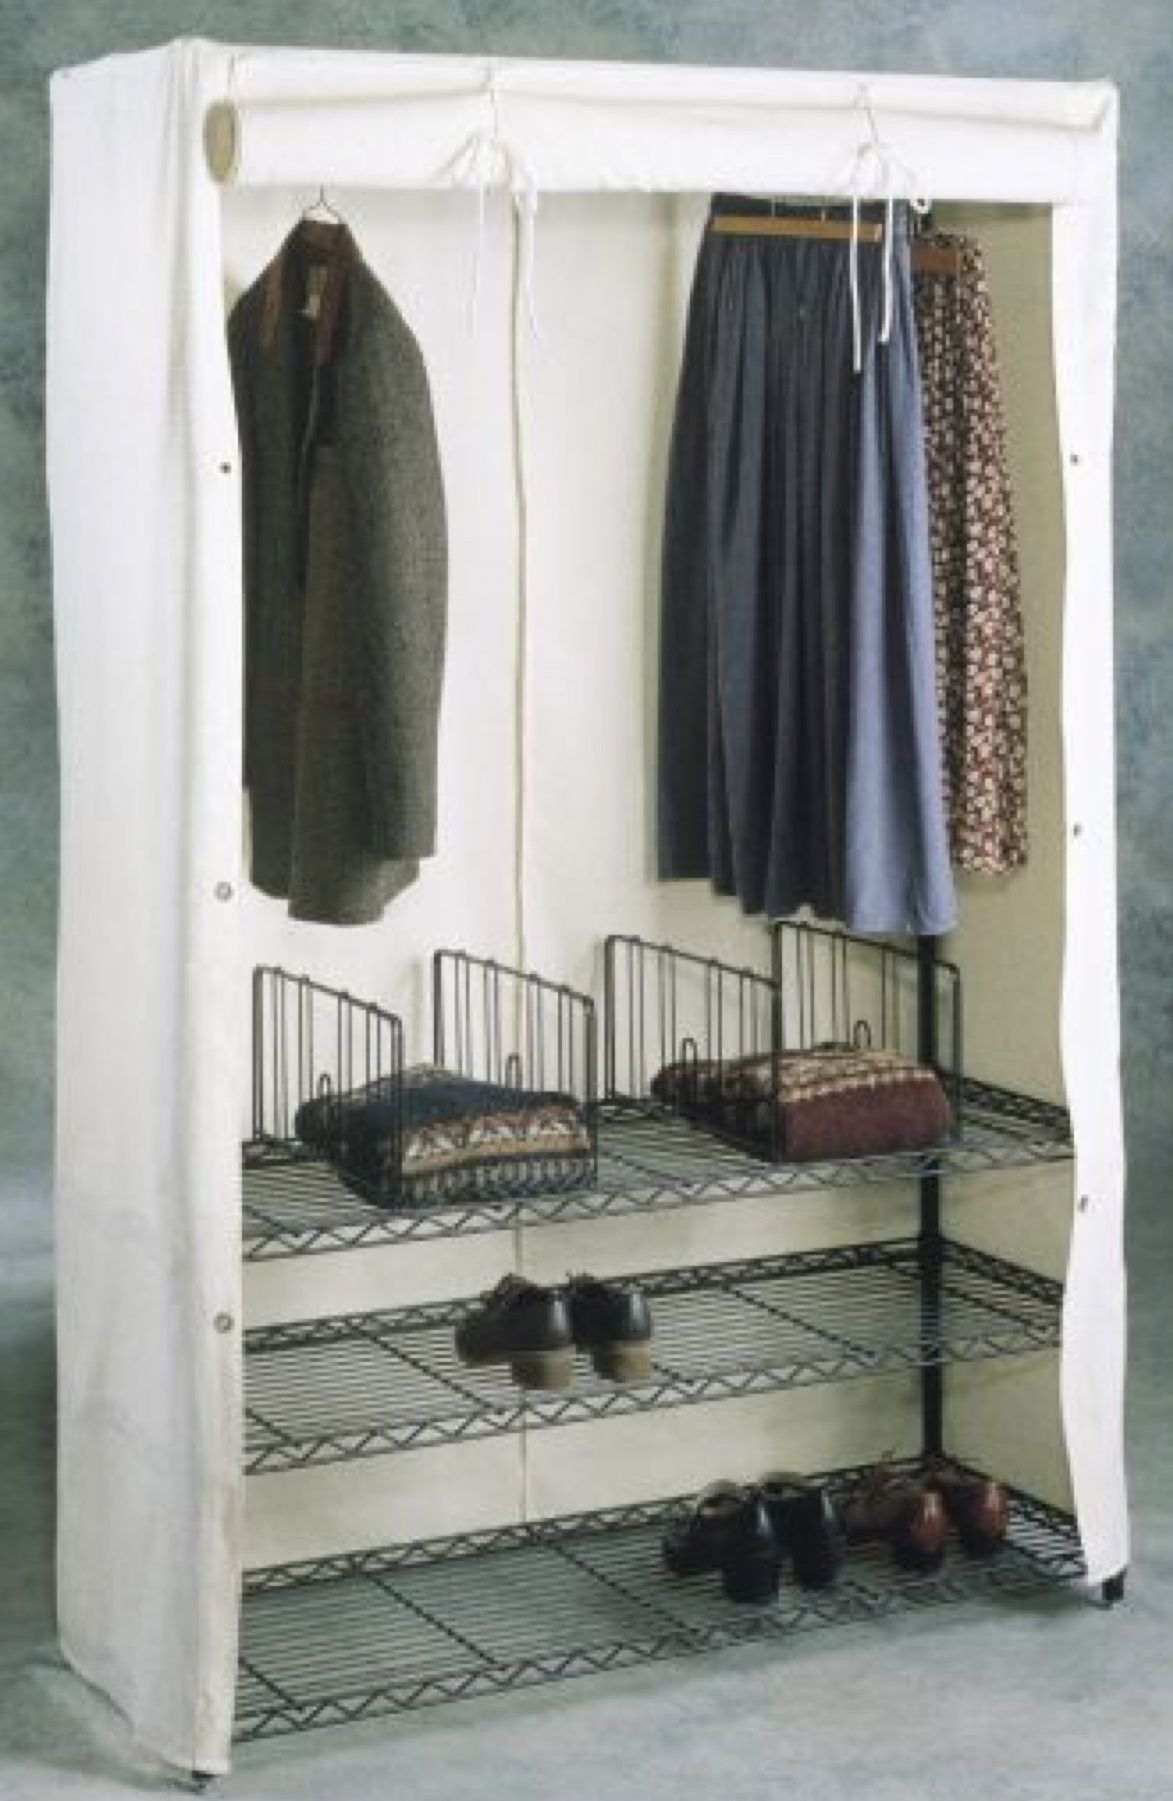 Deluxe Garment Rack With Cover Is Available In Stationary And